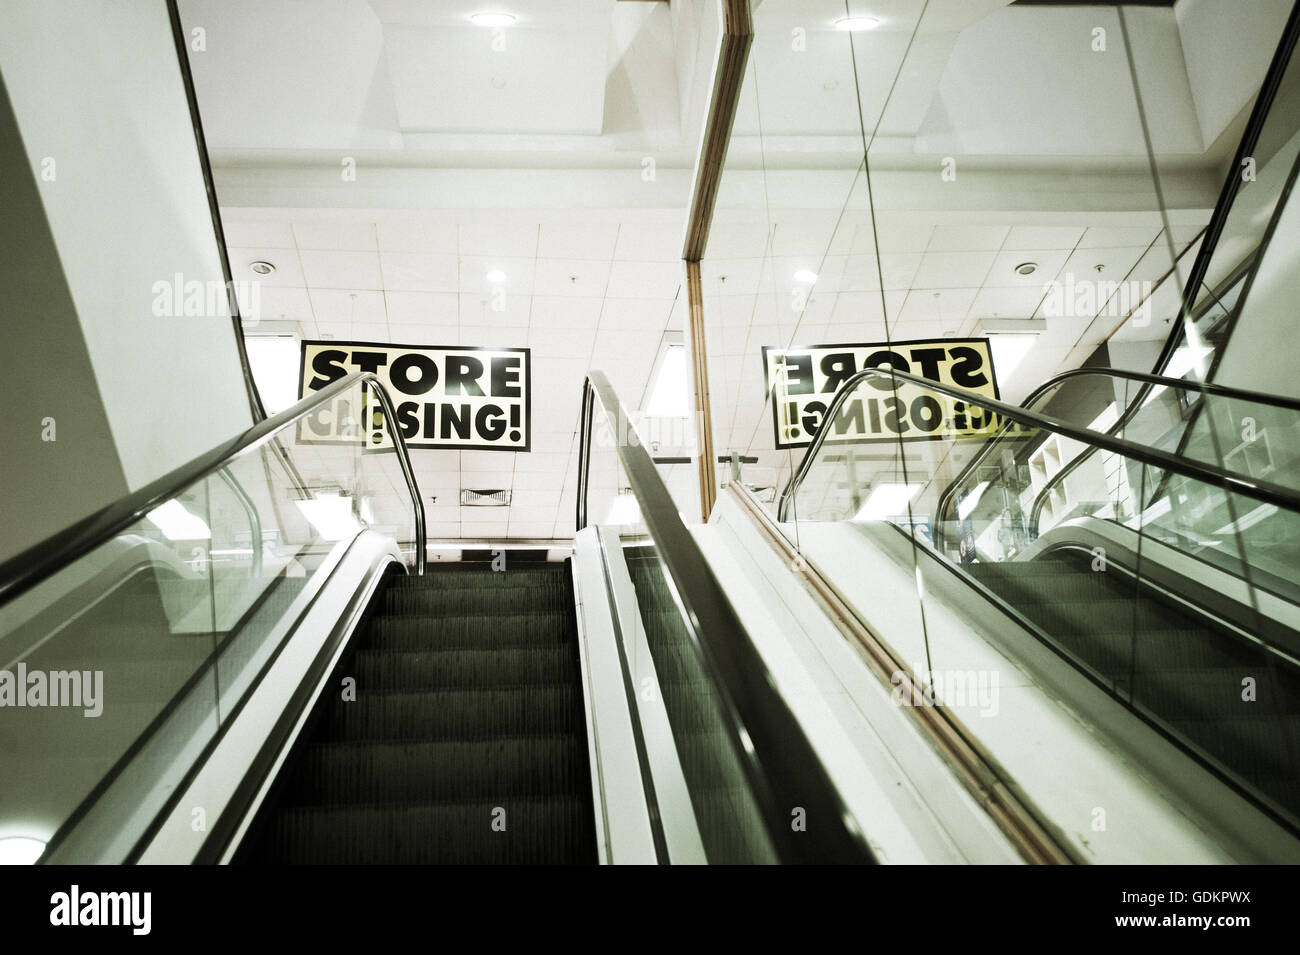 Store Closing - Stock Image